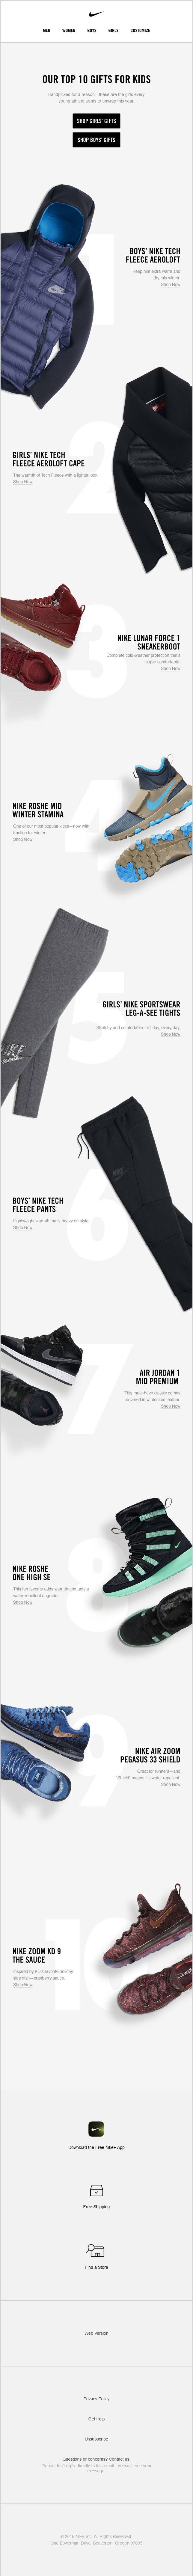 Nike - Top 10 Gifts for Kids